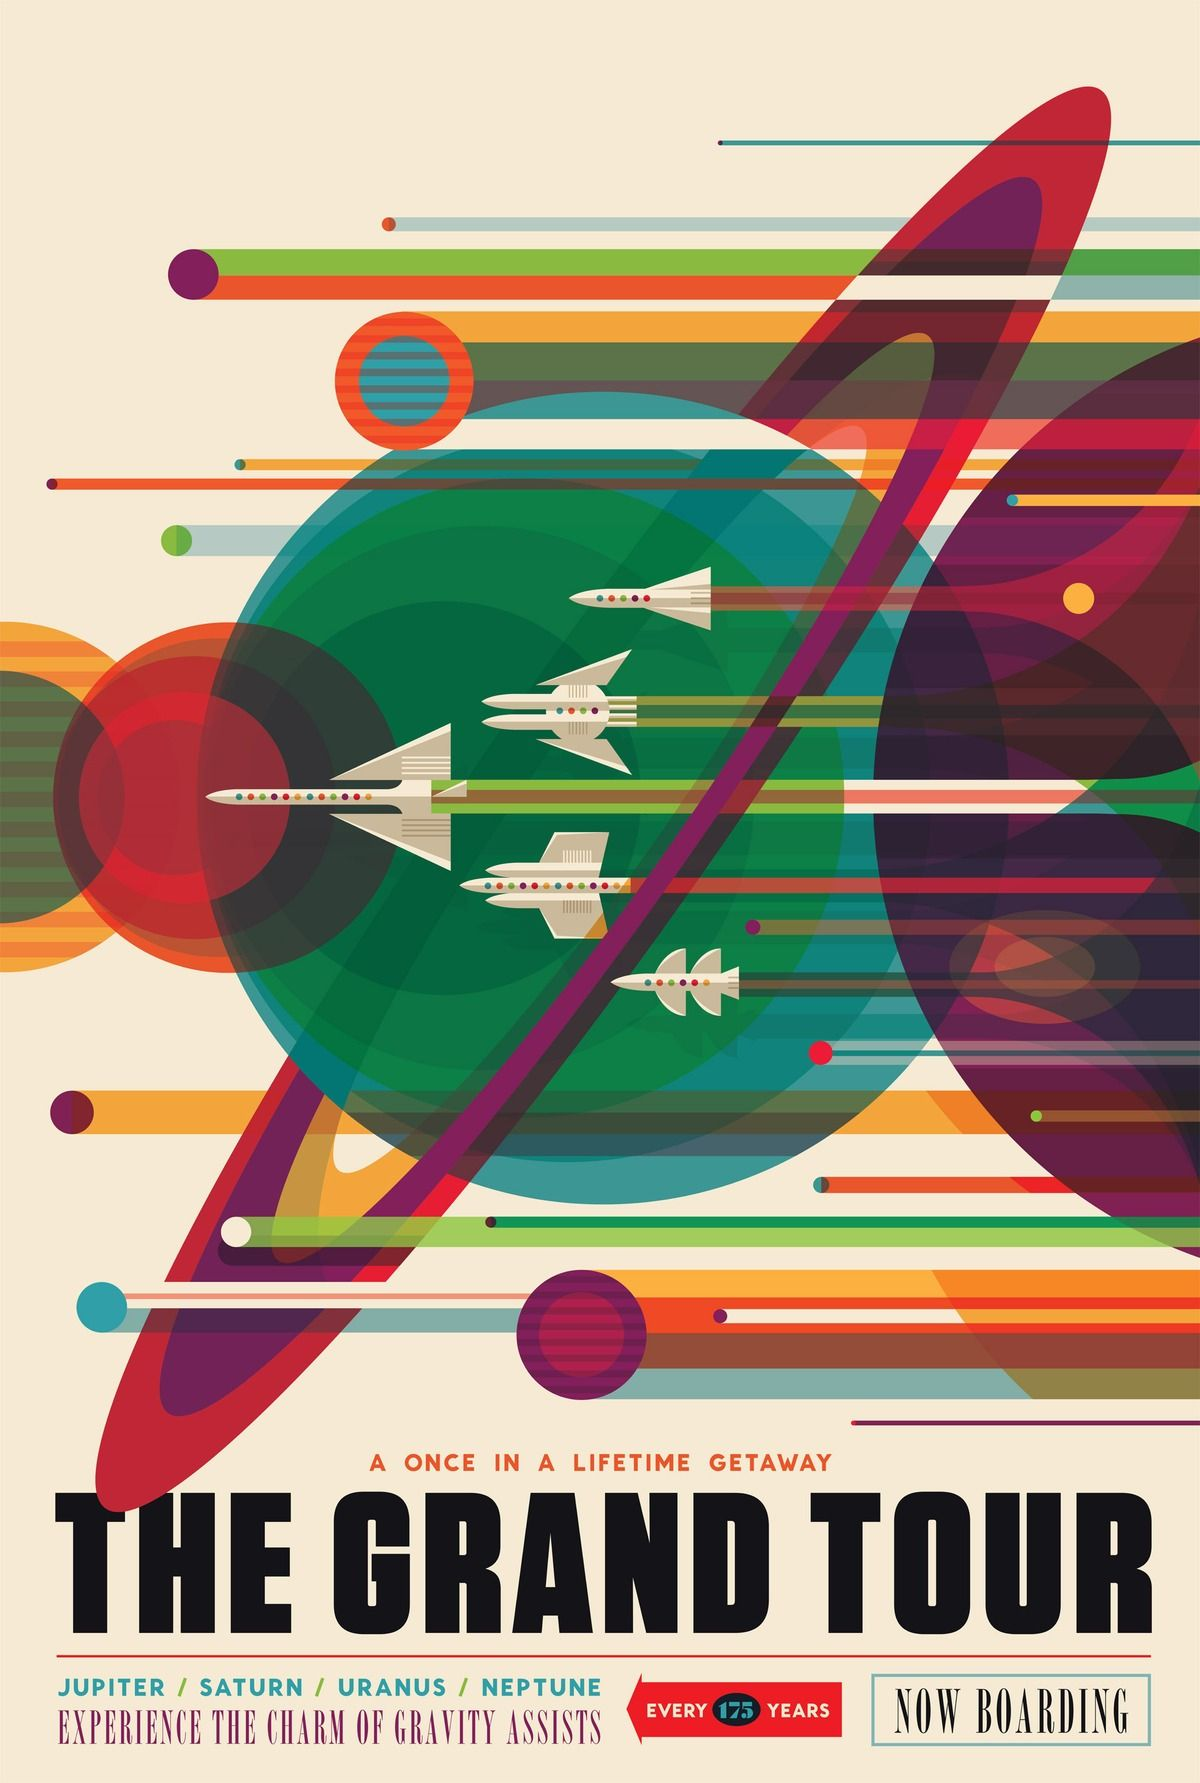 Vintage inspired poster from NASA. Uses shape and line to prioritize elements. White of the Jet plane contrasts with the color to make it stand out, as bell as the bold, black typography on the beige background